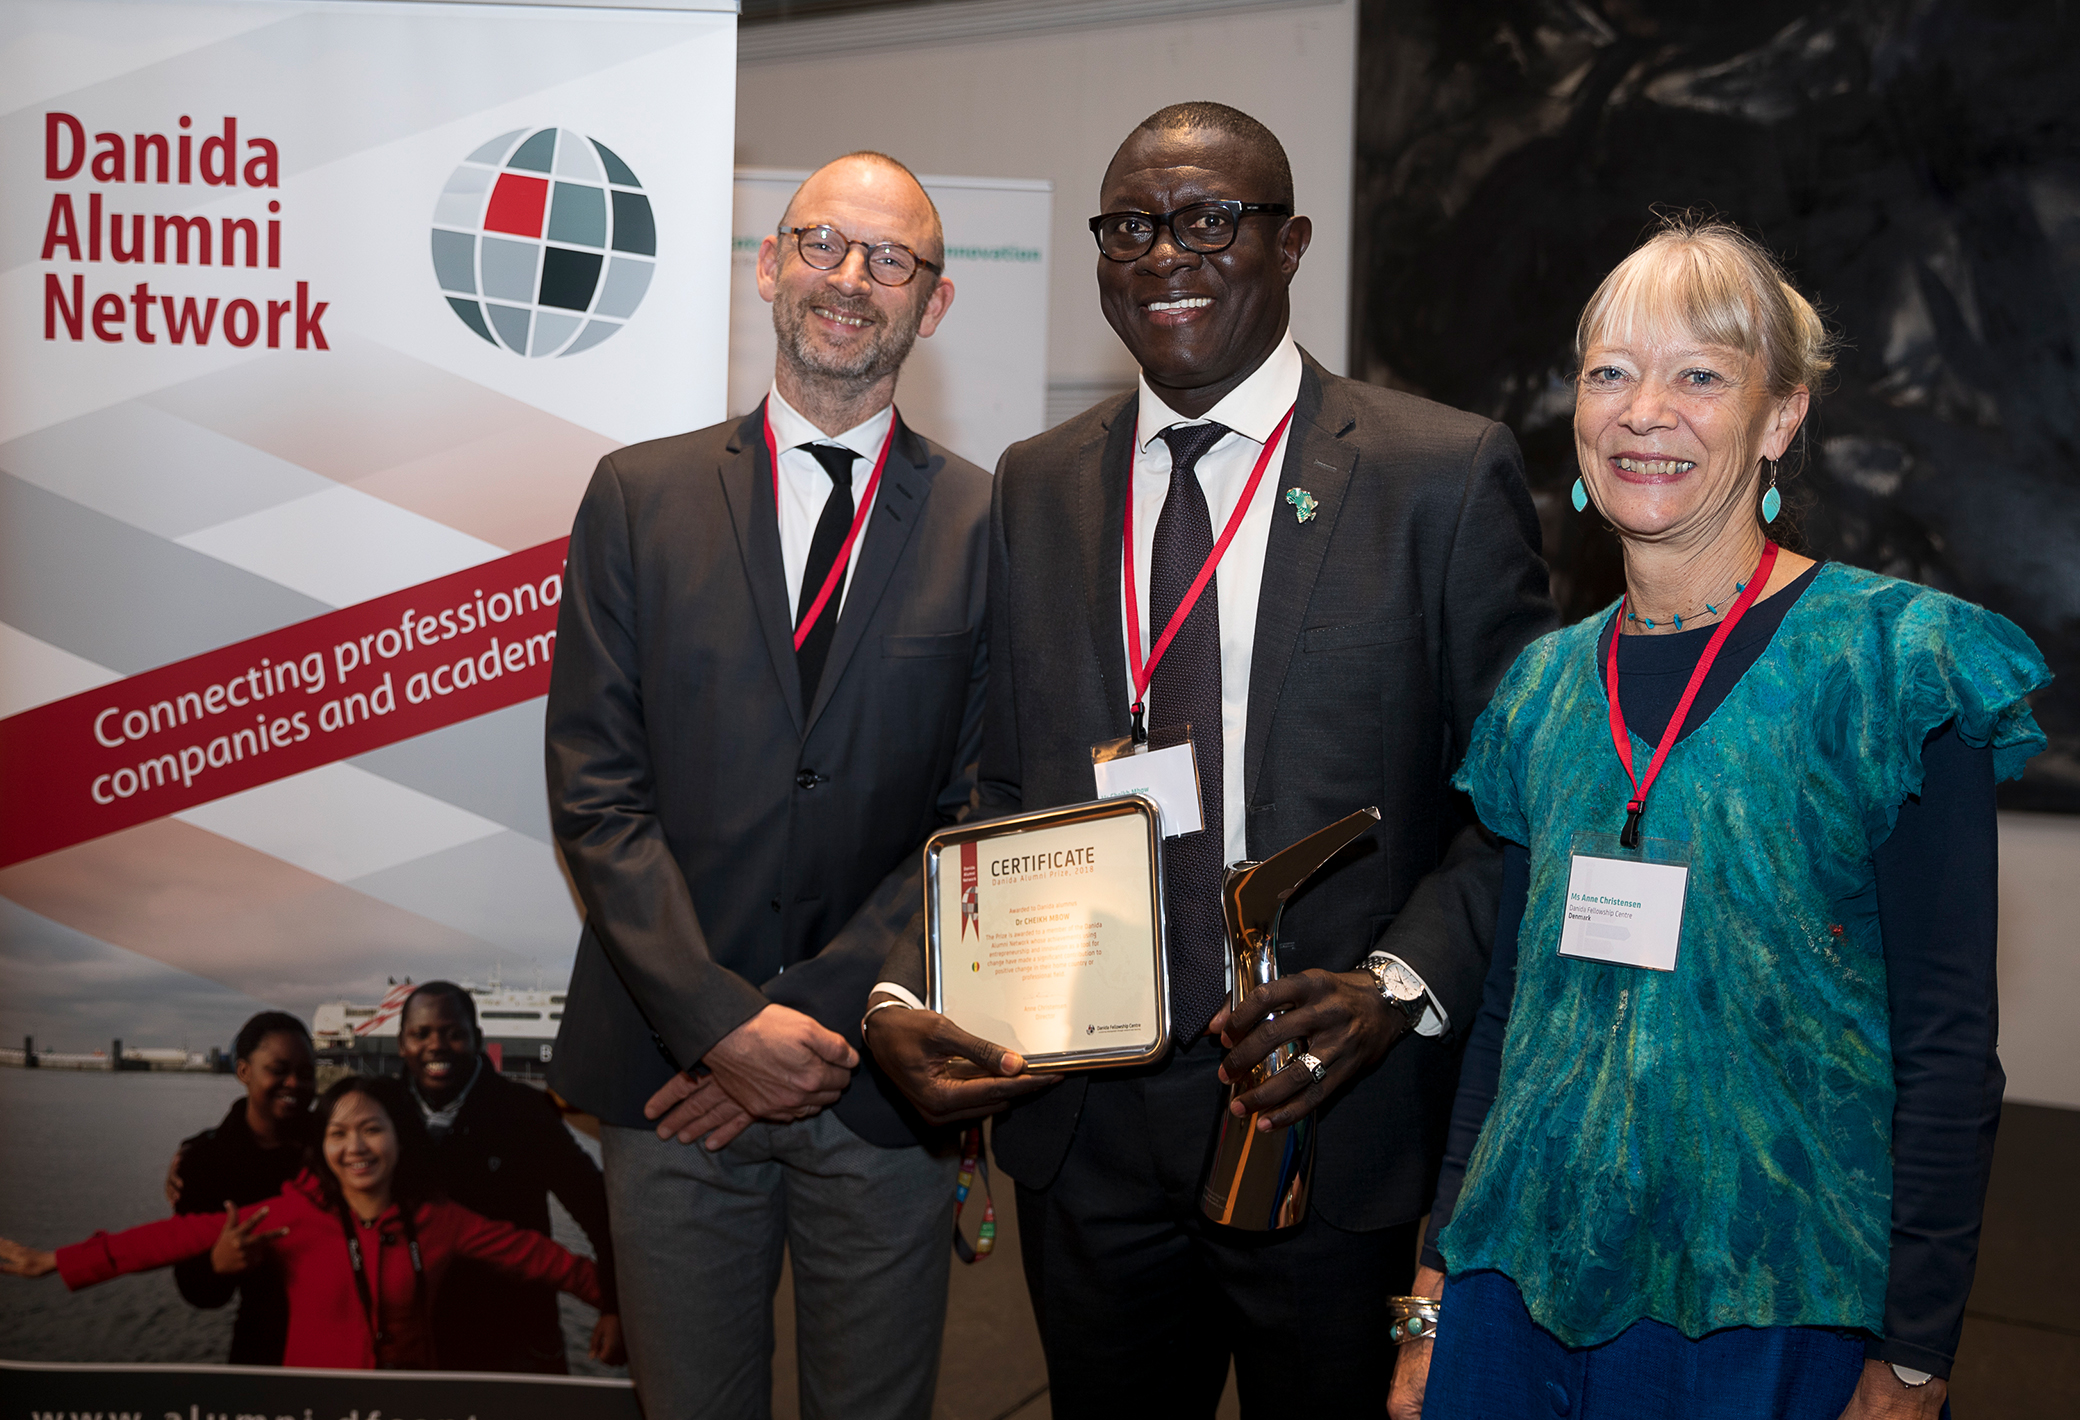 Martin Bille Hermann, State Secretary for Development Policy, the Ministry of Foreign Affairs of Denmark, and Anne Christensen, Danida Fellowship Centre, presented the 2018 prize at the award ceremony in Copenhagen on 8 November.